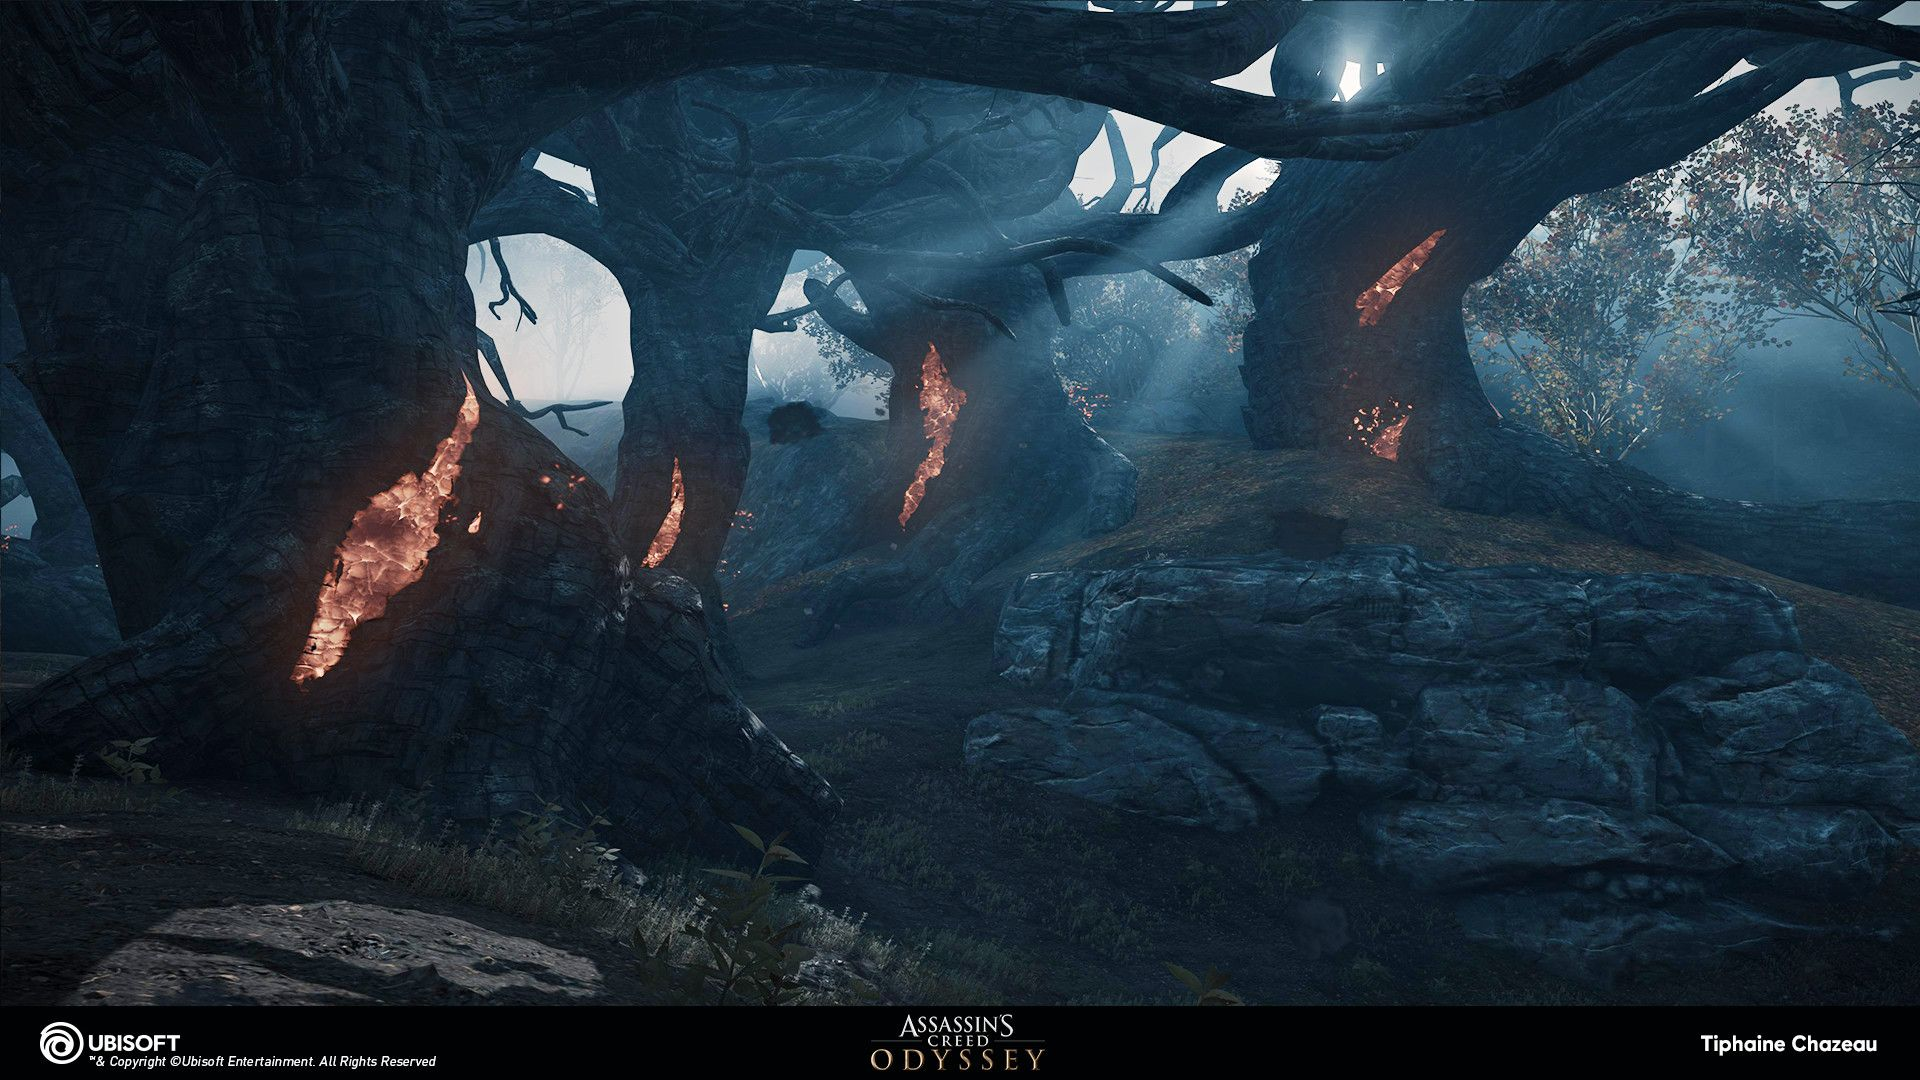 Pin By Jonah Perry On Vfx Inspiration With Images Assassins Creed Odyssey Forest Image